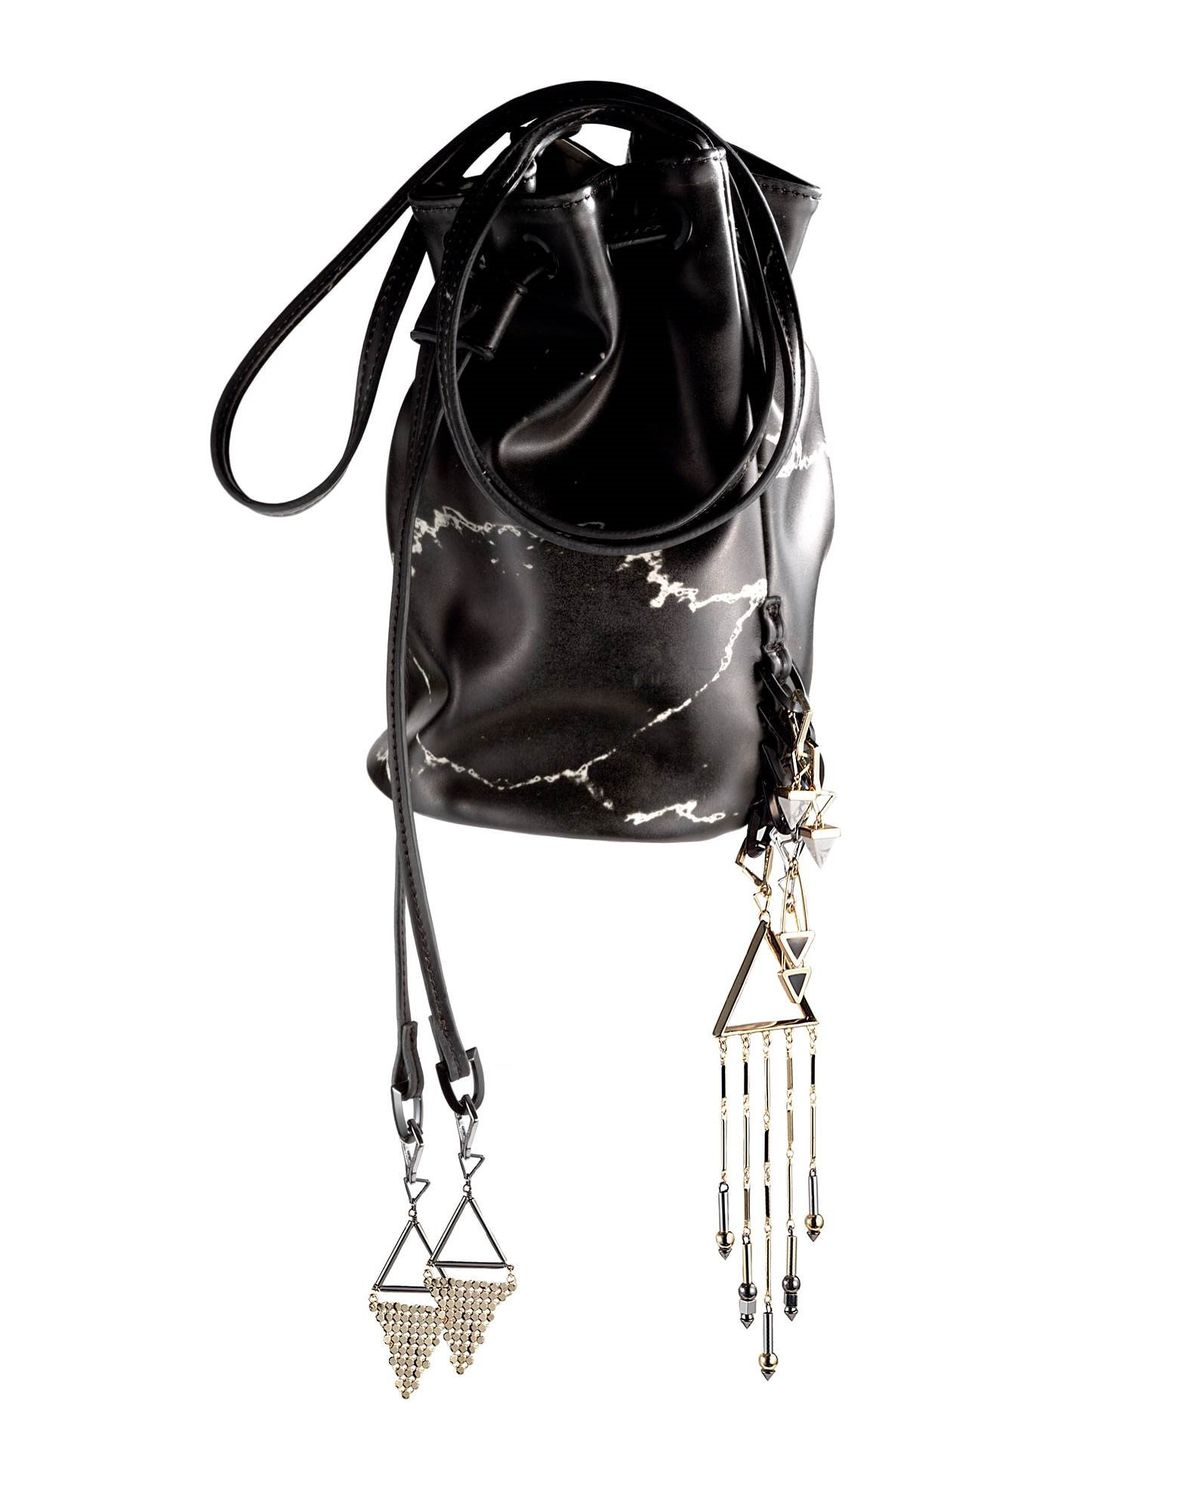 Mini Bucket Bag ($35) with assorted charms ($8 to $13). Photo: Vogue